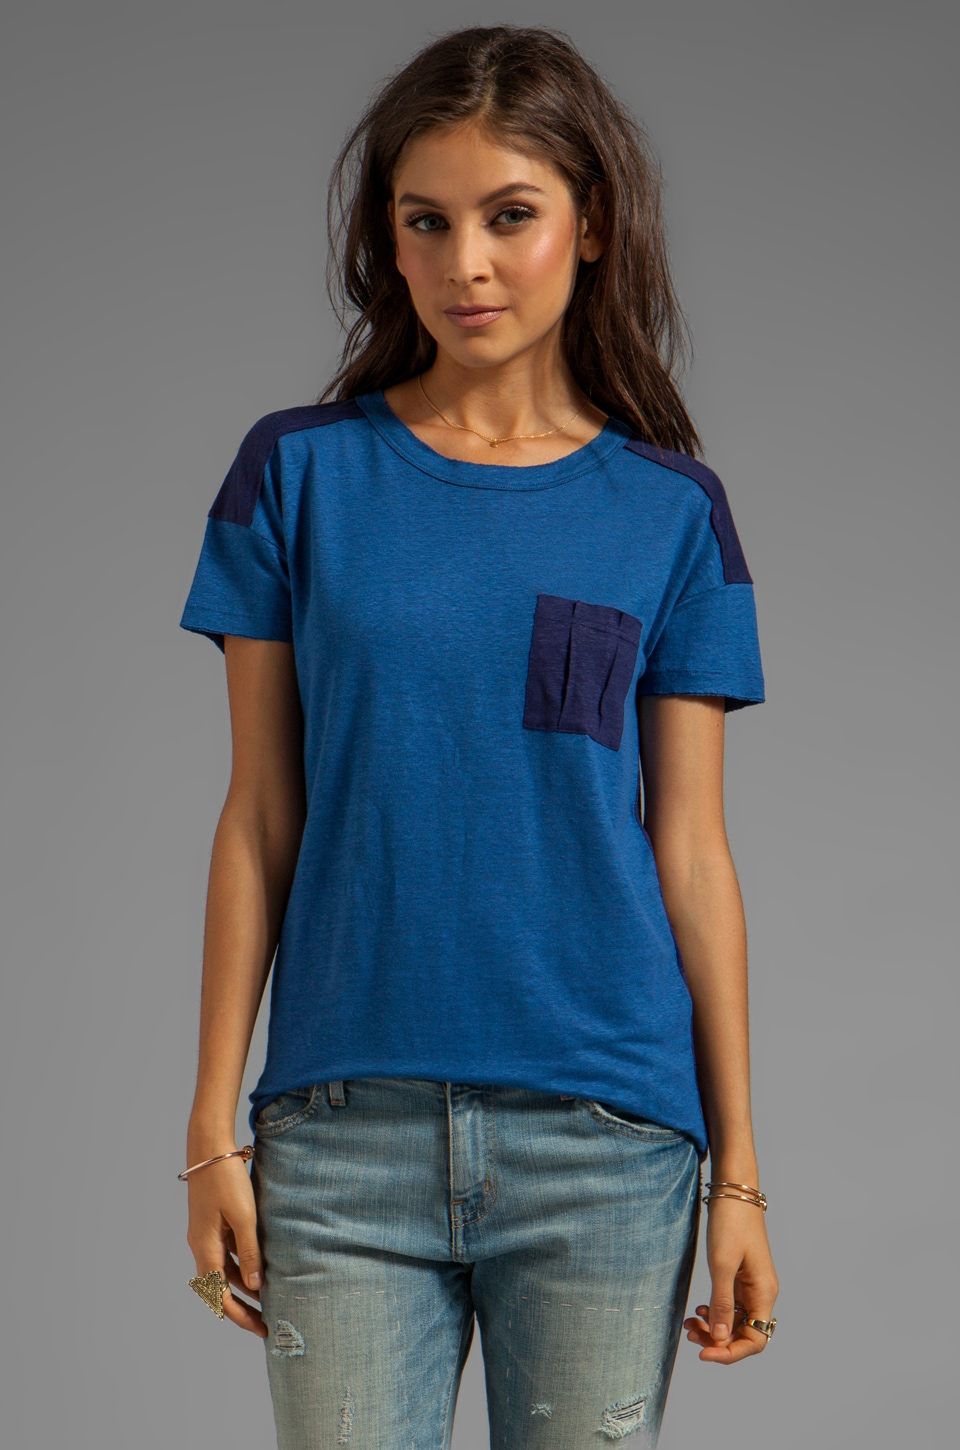 Marc by Marc Jacobs Kip Linen Jersey Tee in Skipper Blue Multi